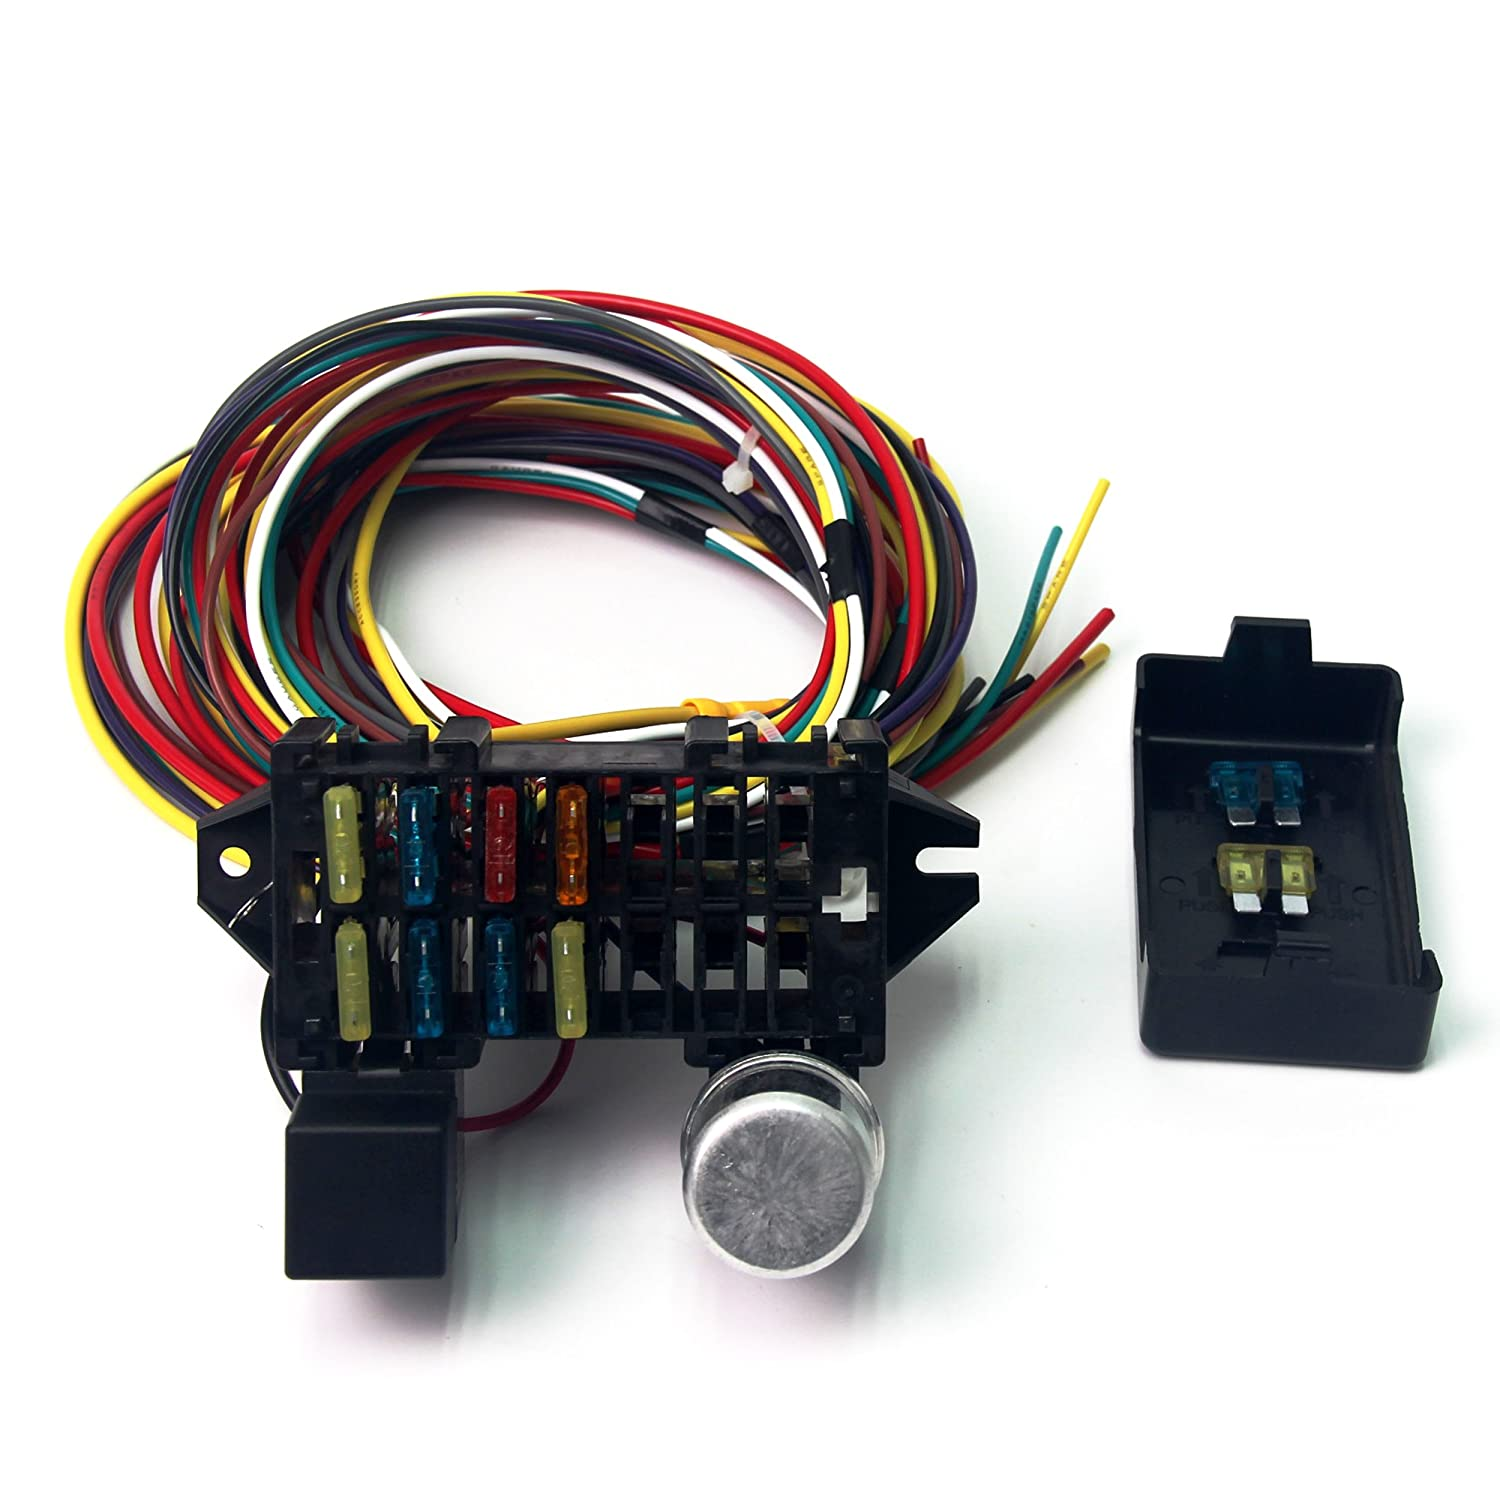 818OhNpuI4L._SL1500_ amazon com wisamic 10 circuit basic wiring harness fuse box Hot Rod Wiring Harness Kits at gsmx.co